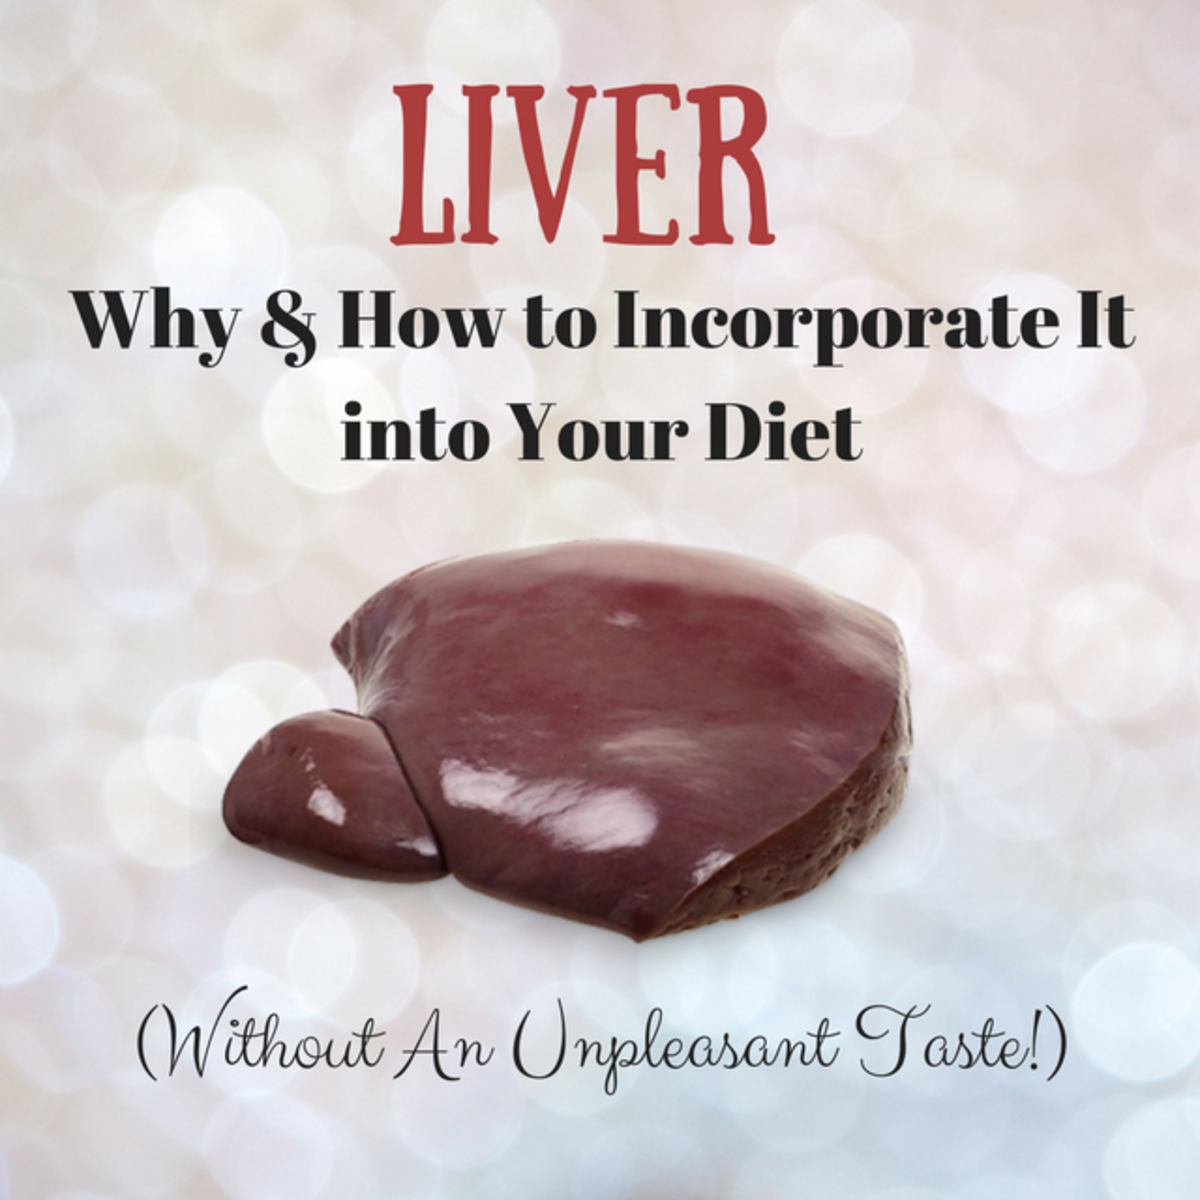 liver-why-and-how-to-incorporate-this-nourishing-food-into-your-diet-without-a-gross-taste